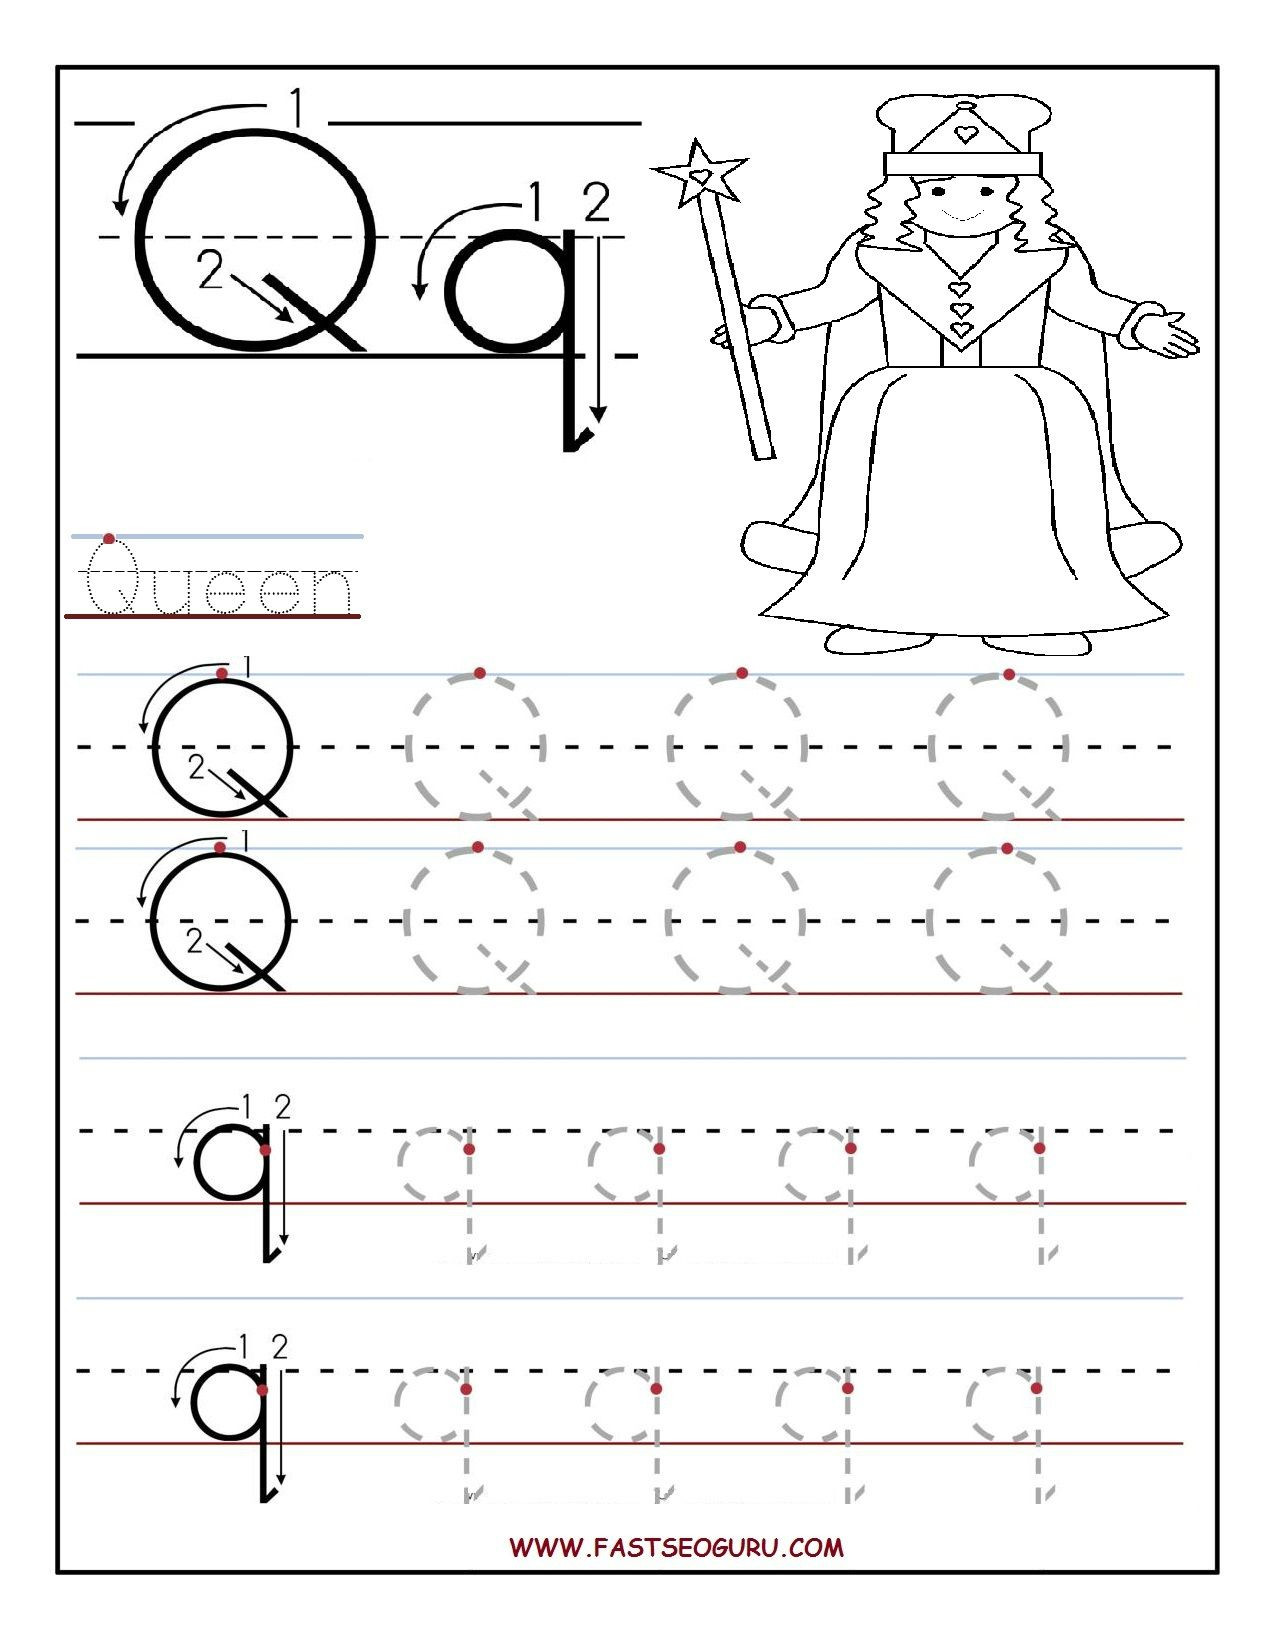 Letter Q Worksheets for Preschool Printable Letter Q Tracing Worksheets for Preschool